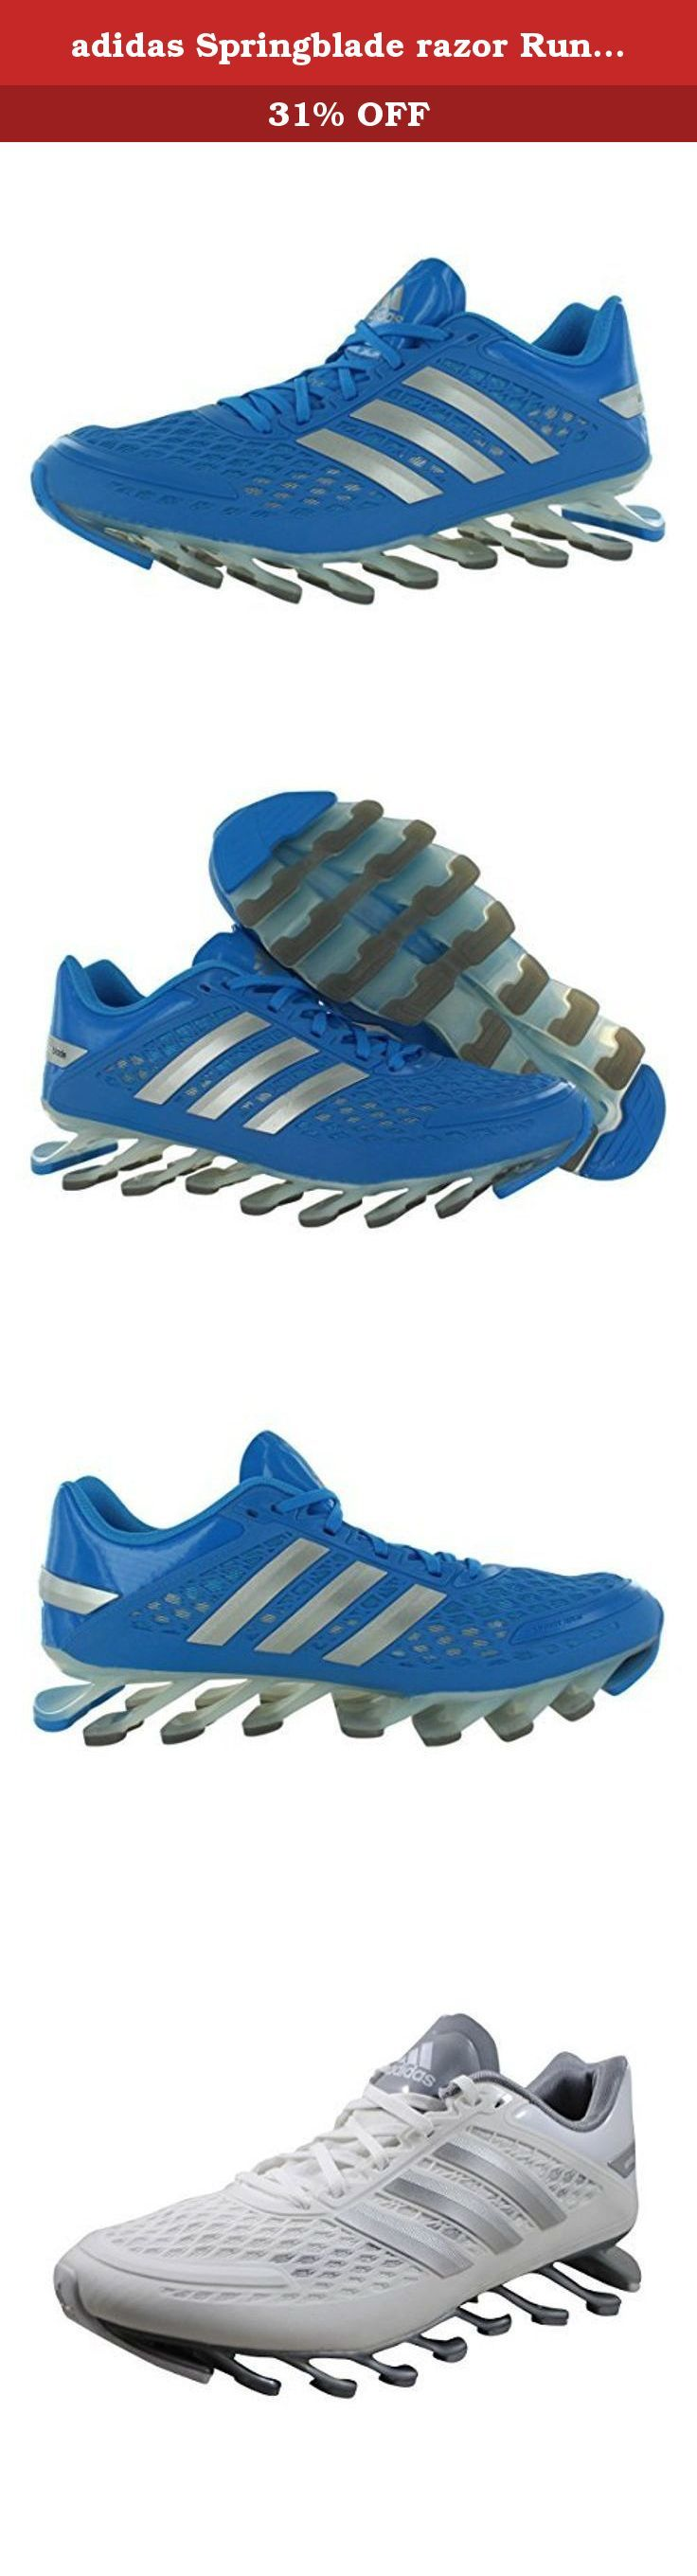 adidas Springblade razor Running Shoes Boys' Grade School AUTHENTIC sneakers white (5.5). The ADIDAS SPRINGBLADE RAZOR JUNIOR RUNNING SHOE is an incredible and innovative offer for those boys who love running. 16 small high-tech elastic-polymer blades on the outsole allows a more efficient stride that release more energy. Designed with transparent blades, you will feel like you're running on air.